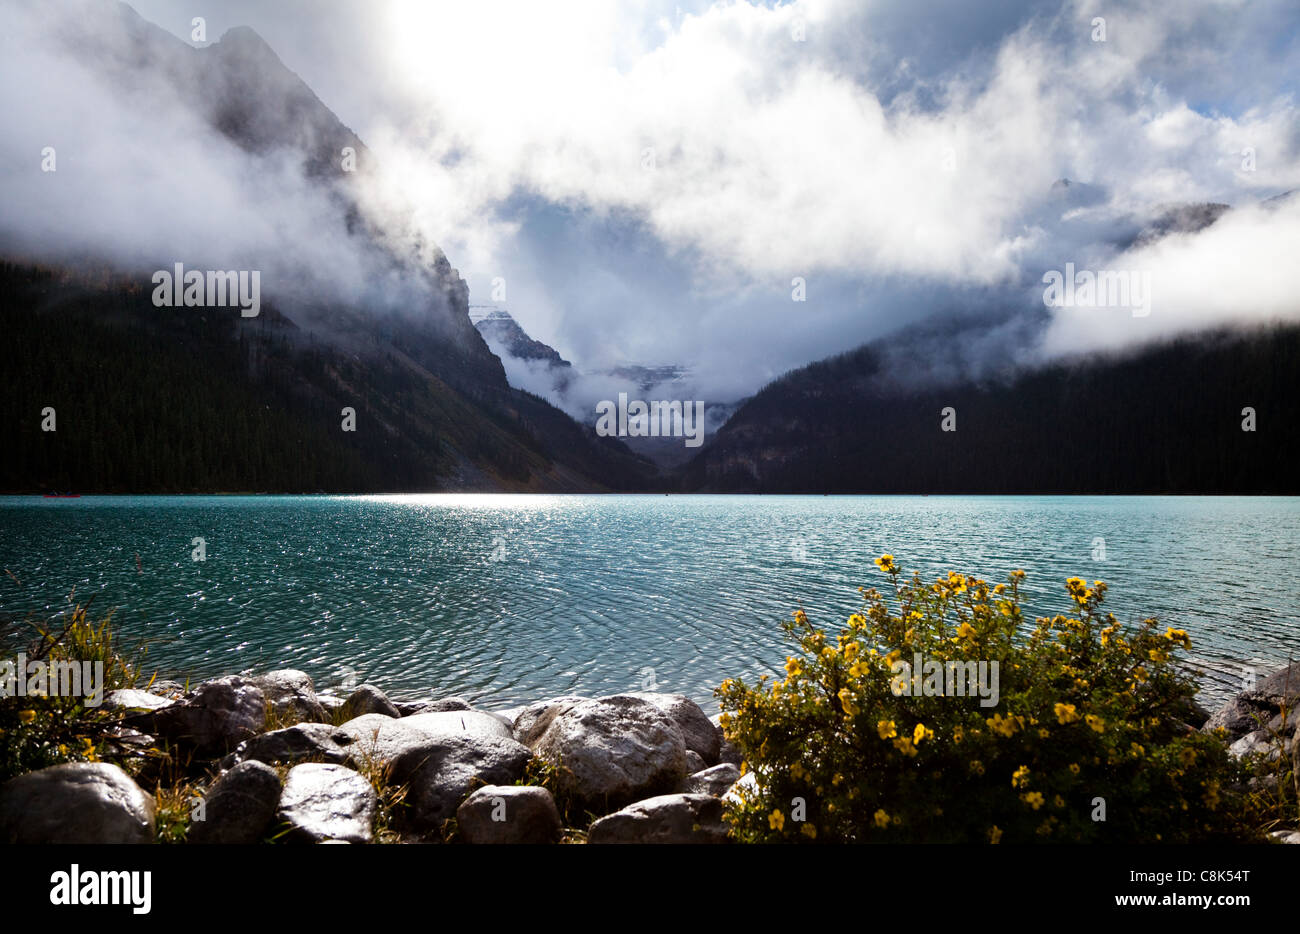 Lake Louise. Le parc national Banff. L'Alberta. Canada, octobre 2011 Photo Stock